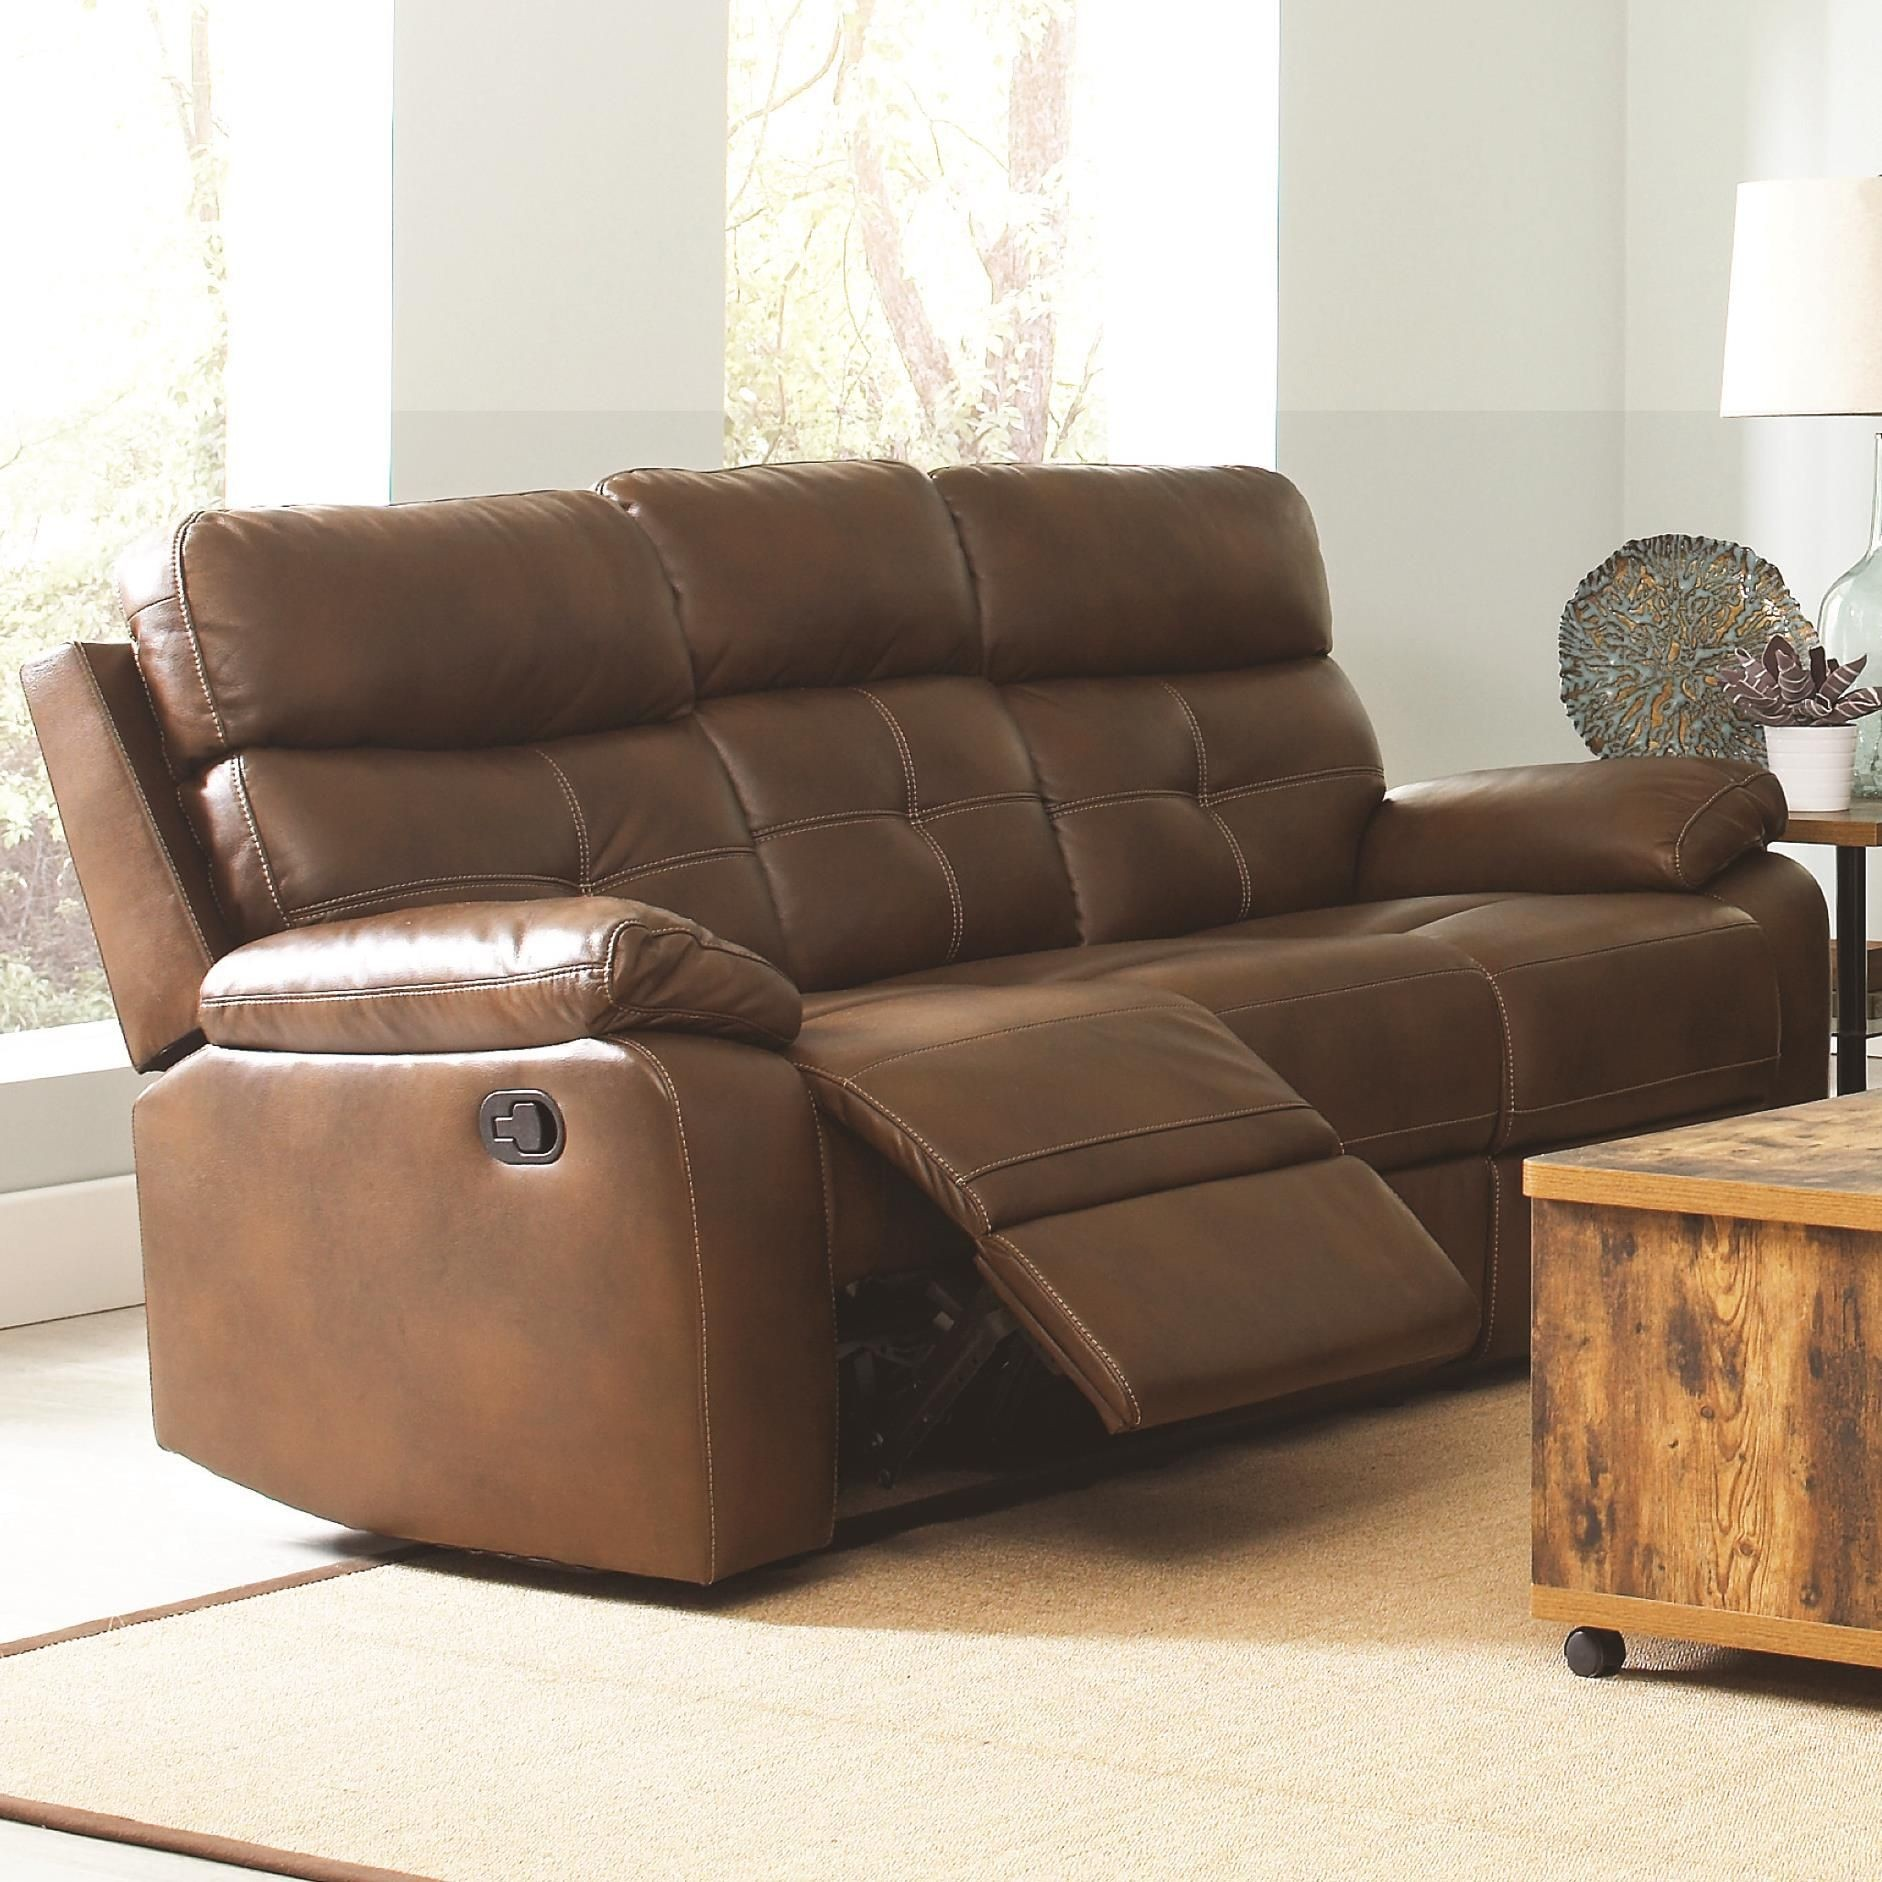 Leather Sofa Price: Damiano Faux Leather Reclining Sofa From Coaster (601691